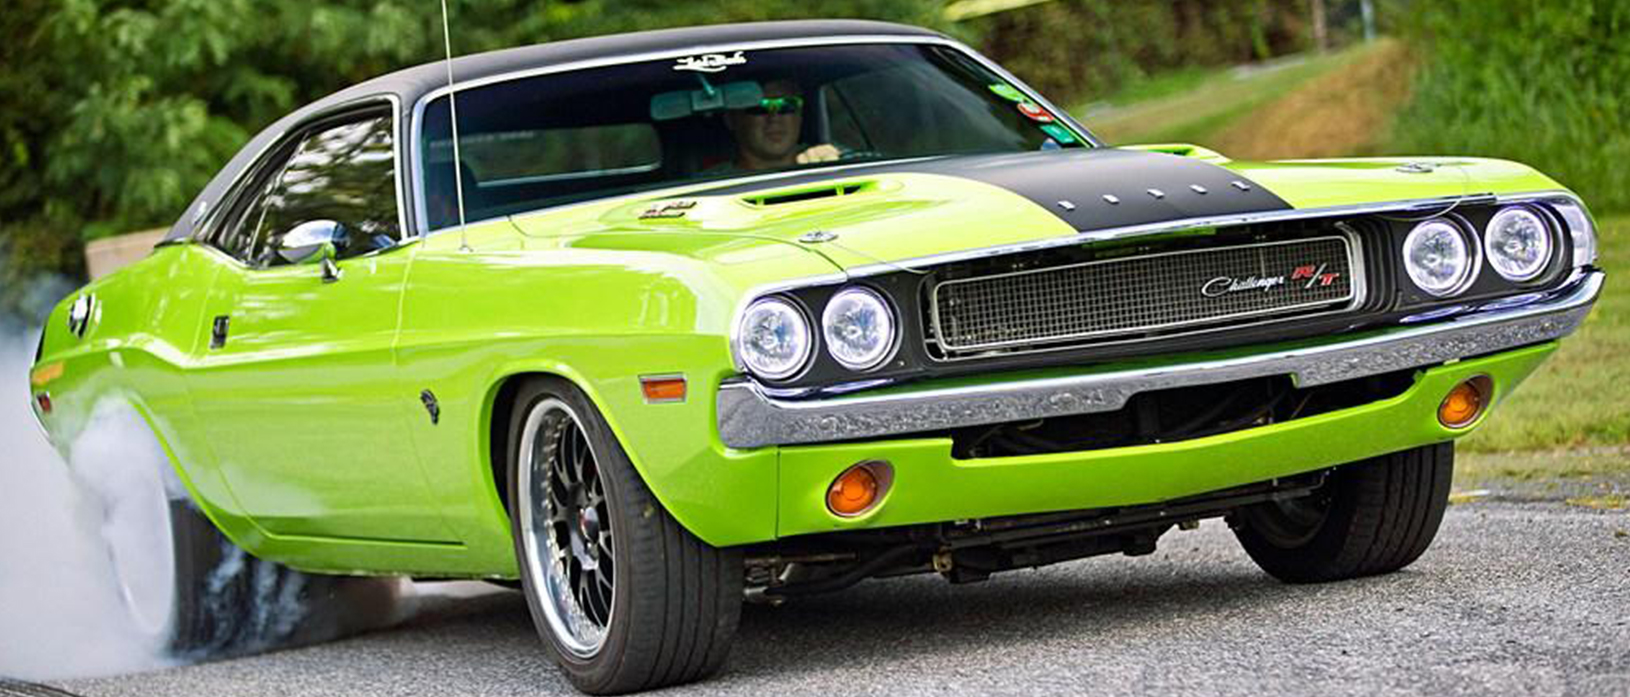 Green Dodge Challenger R/T with flat black hood stripe